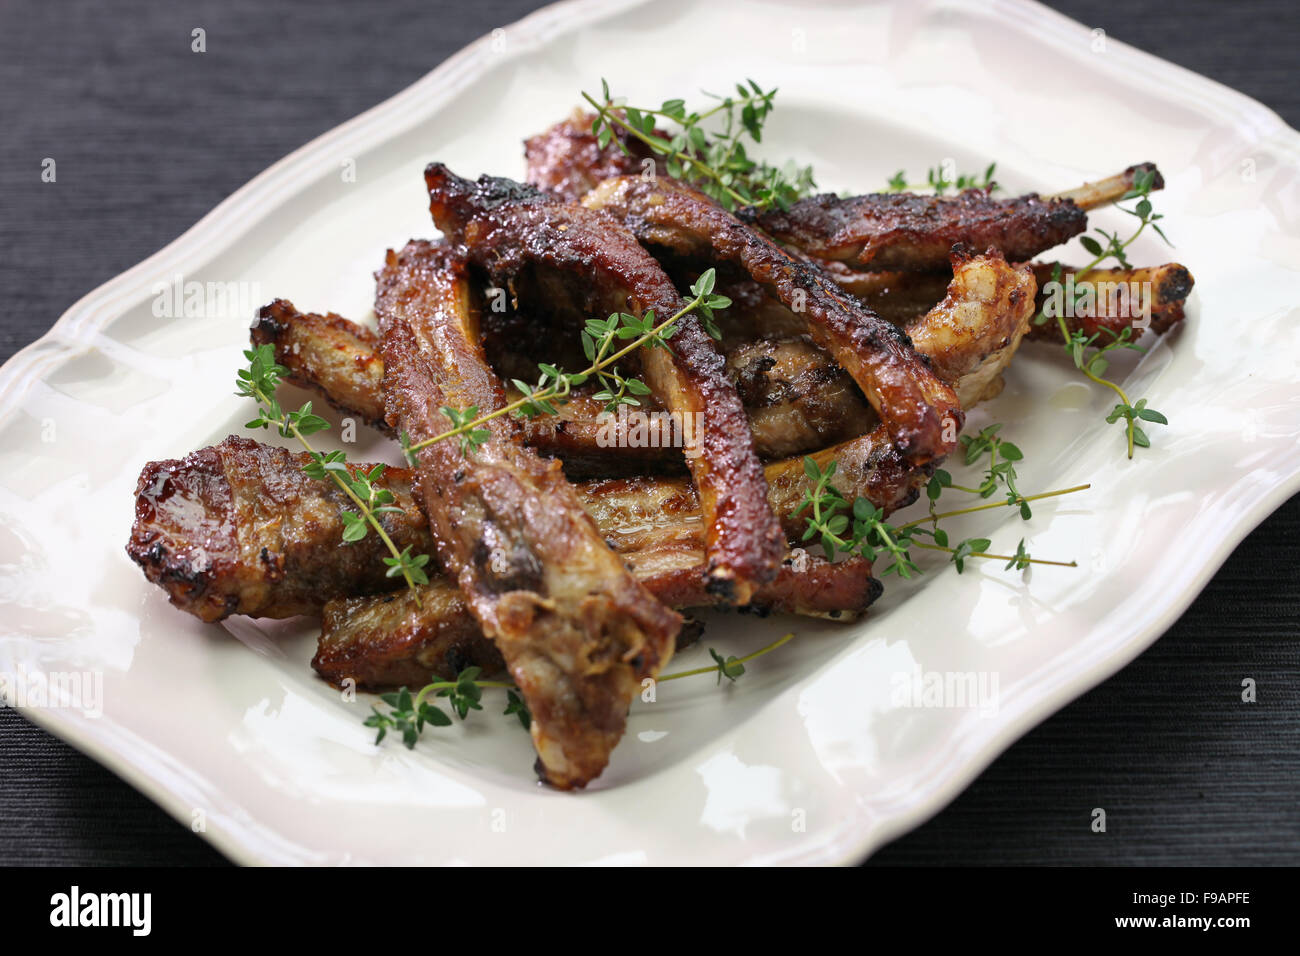 homemade spare ribs, american cuisine - Stock Image